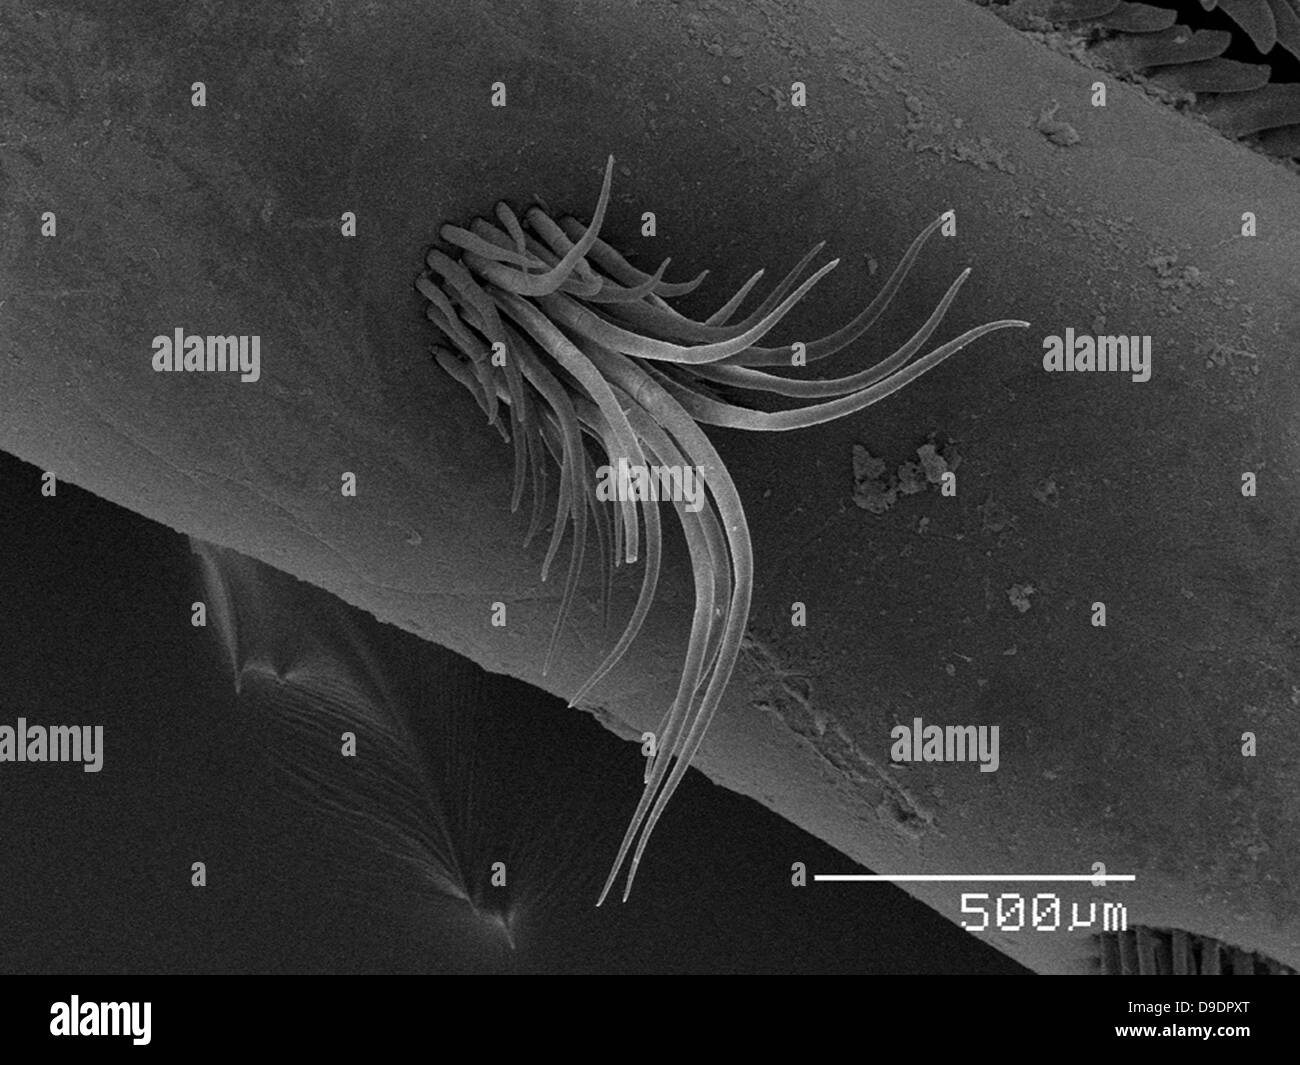 Crayfish claw SEM - Stock Image